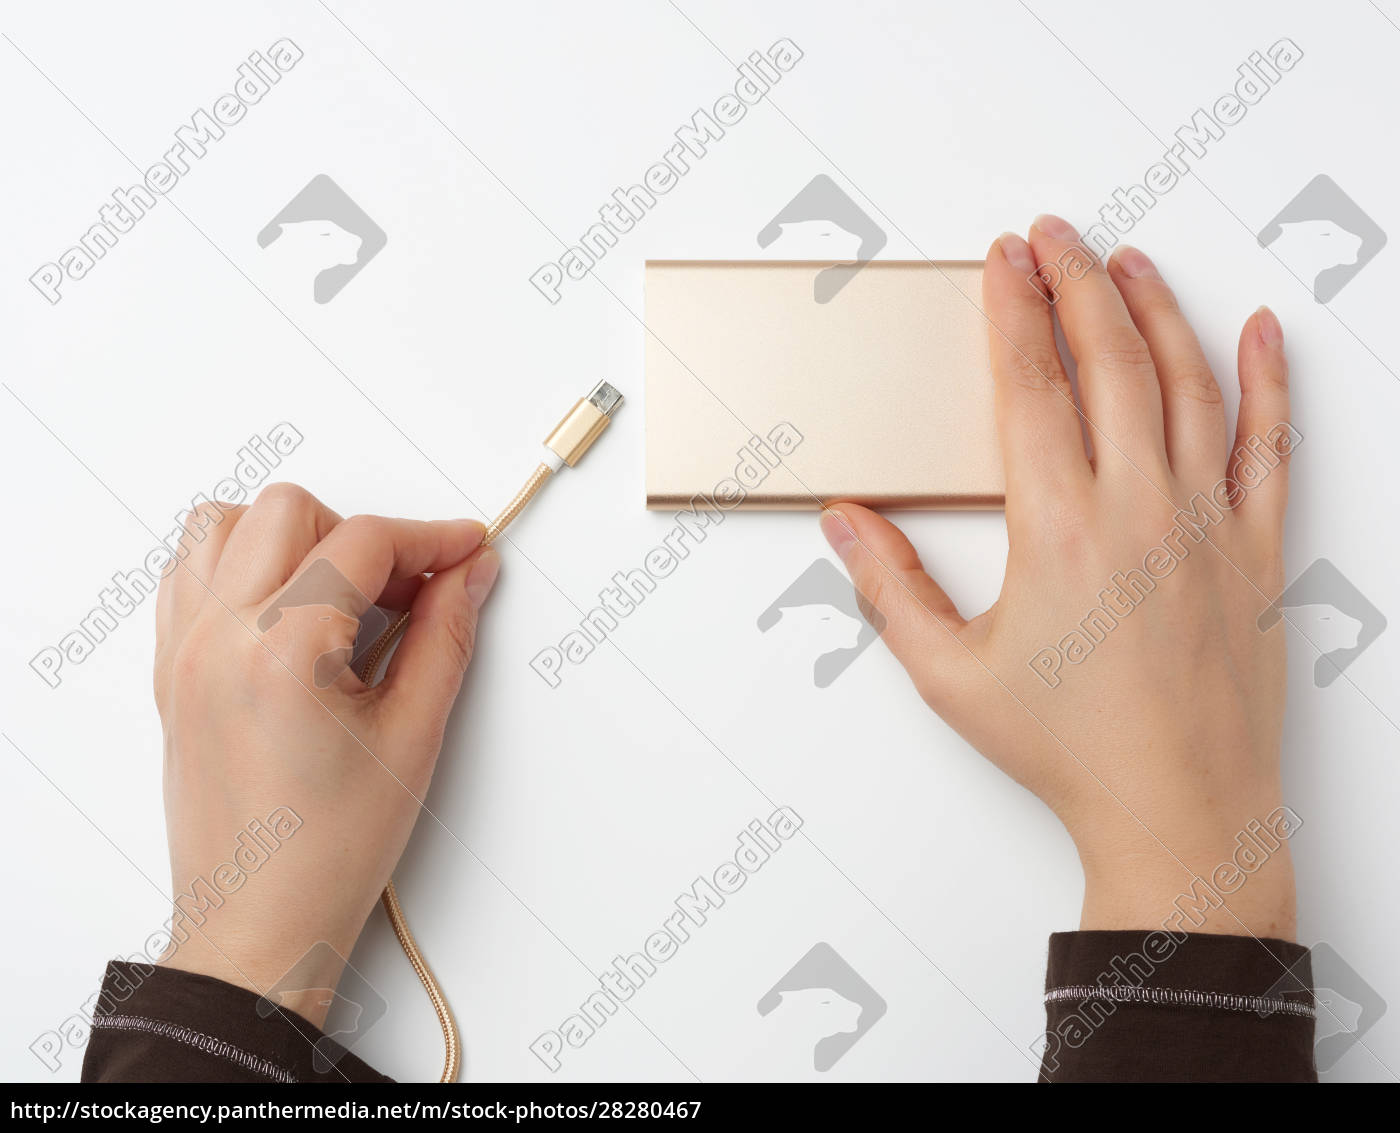 hands, holding, a, portable, power, bank - 28280467